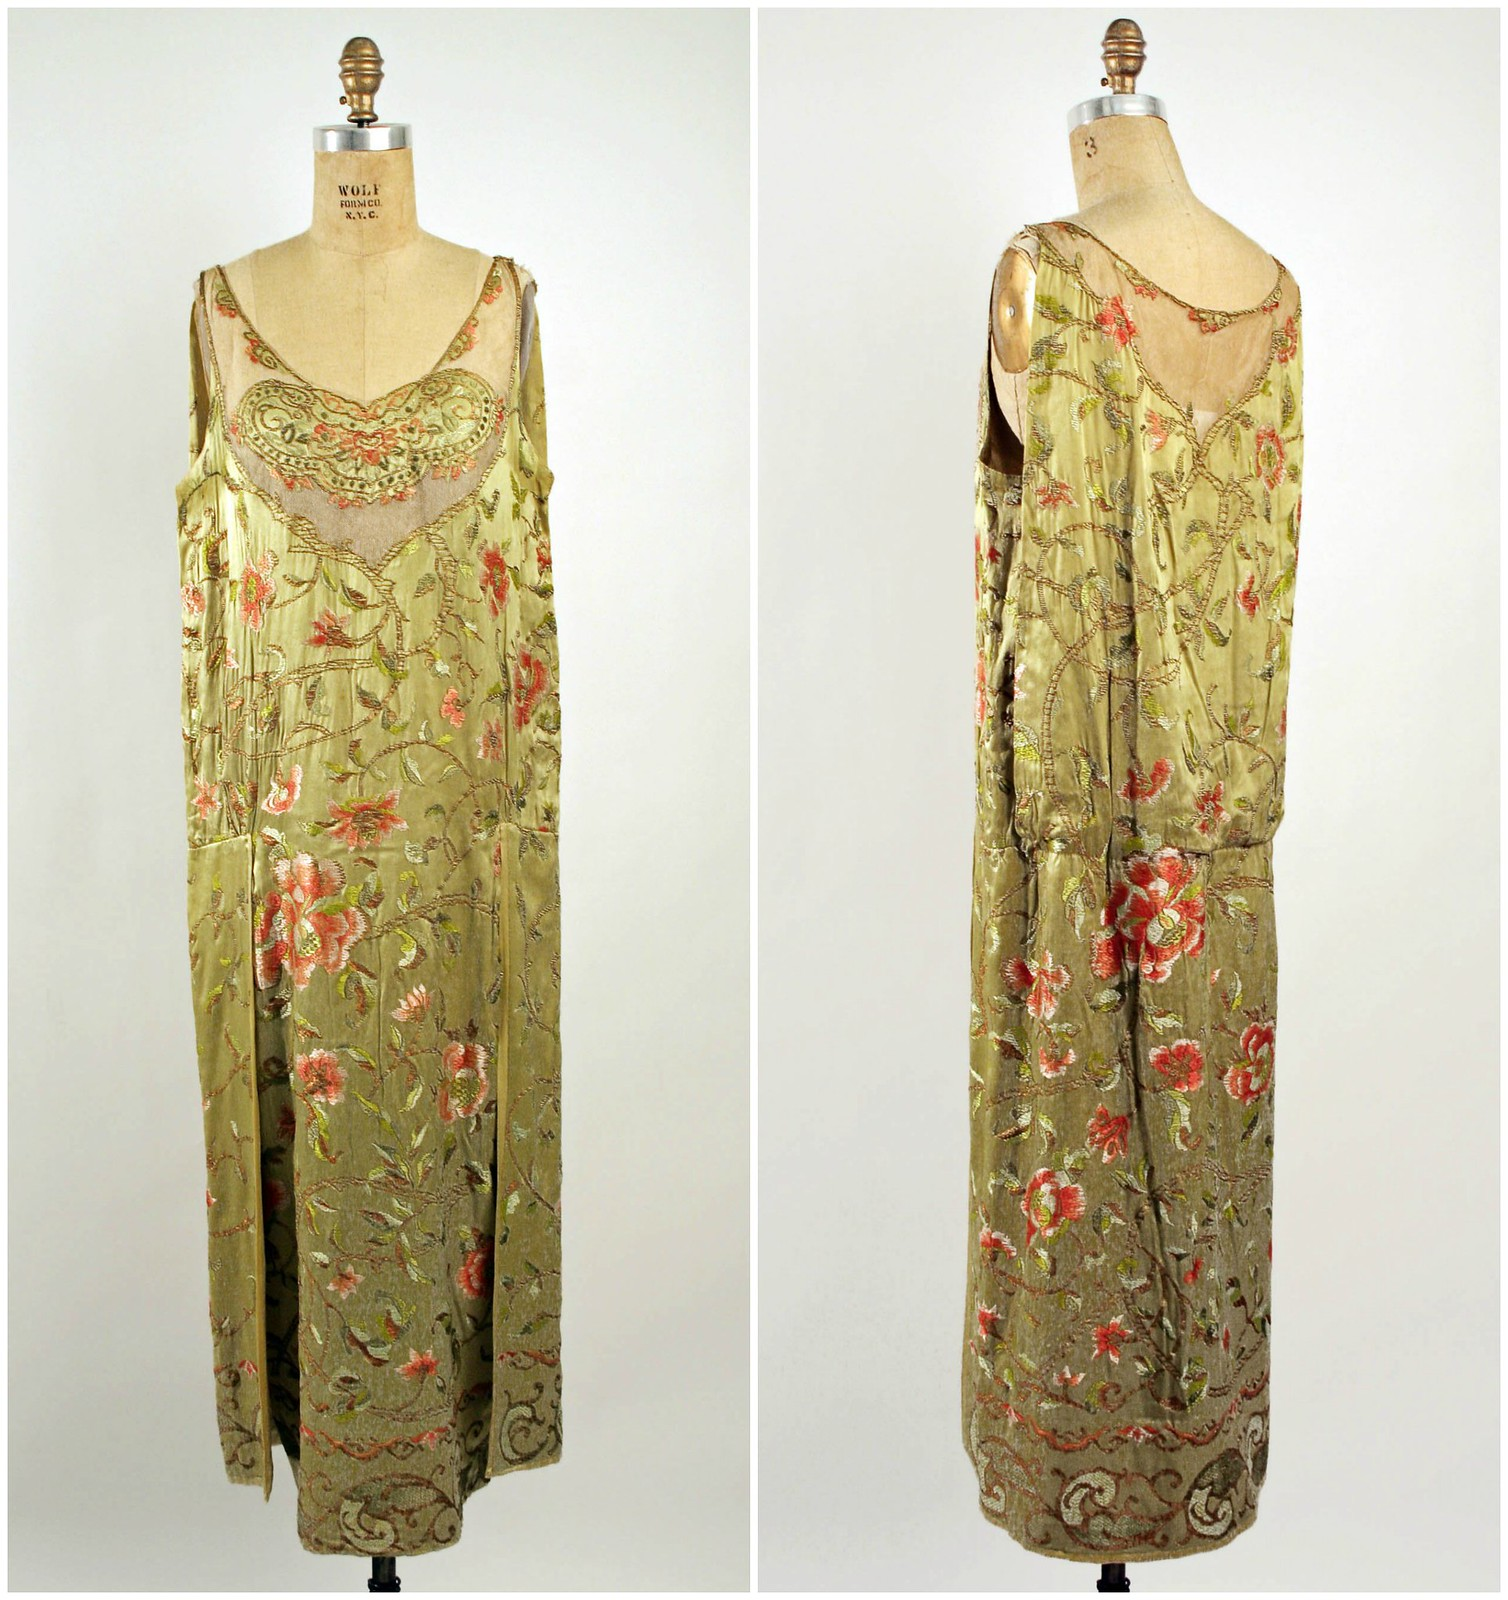 1924 Evening Dress. French. Callot Soeurs. Silk. metmuseum